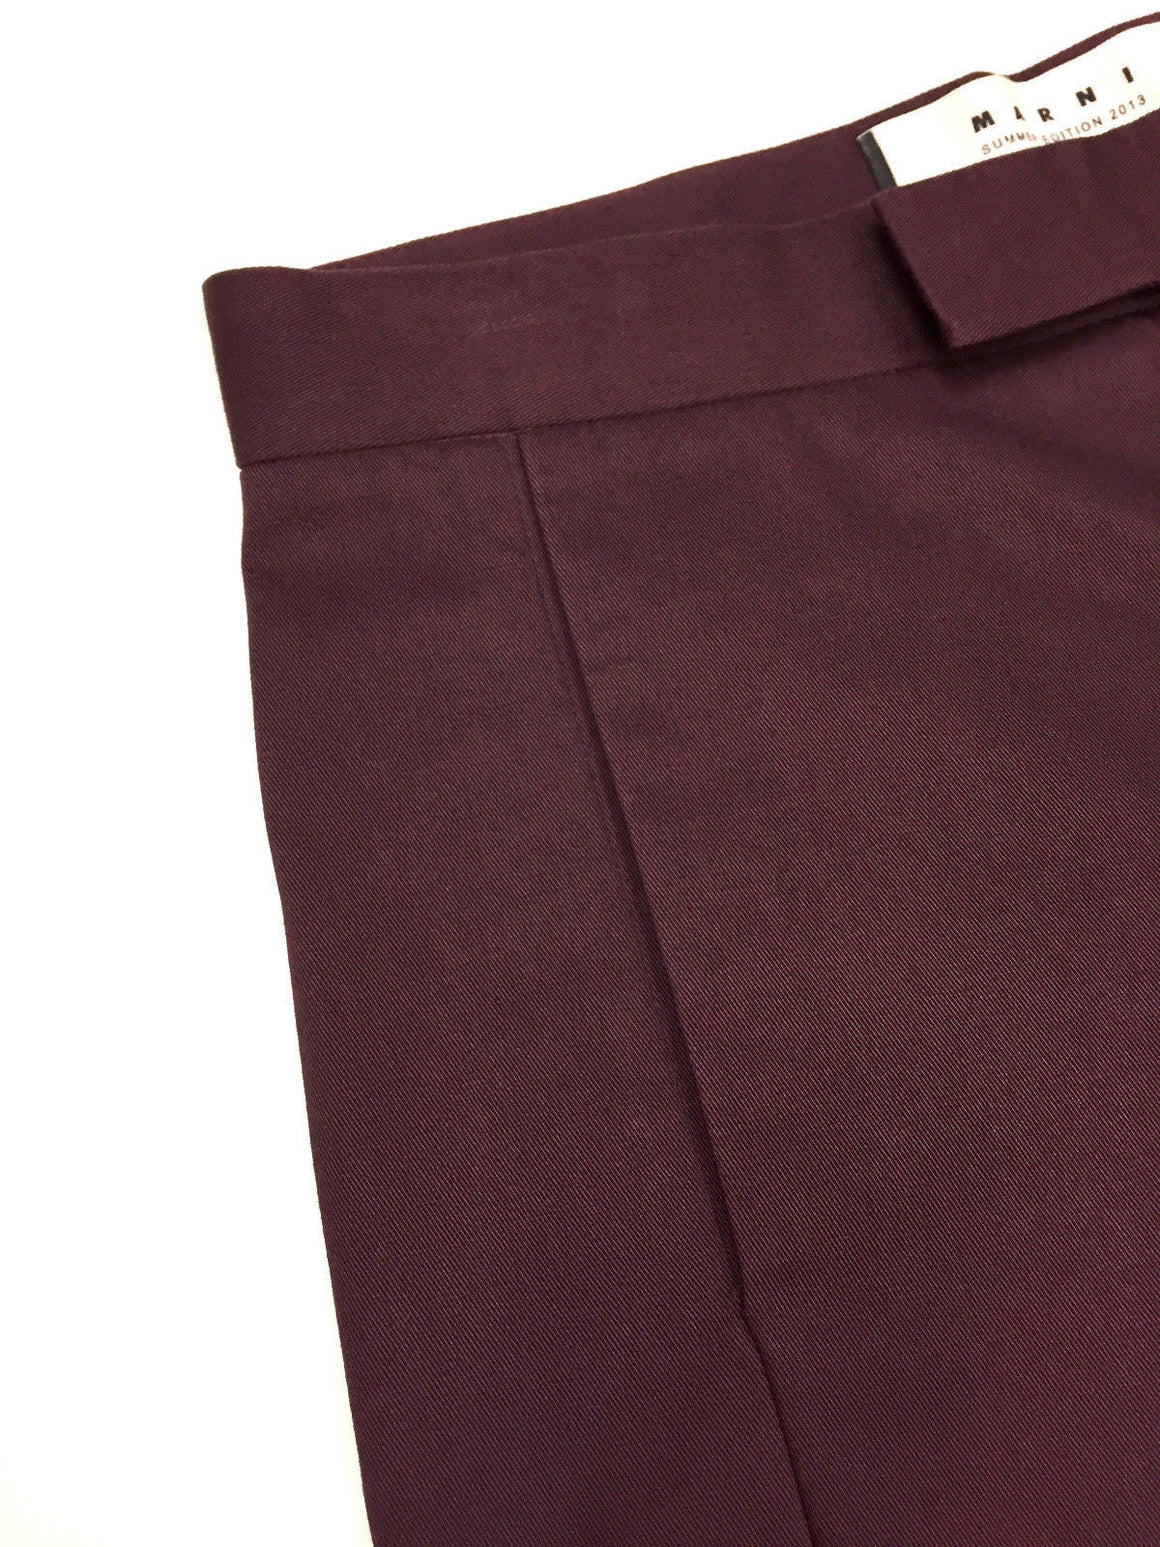 bisbiz.com MARNI Cordovan Cotton Twill Straight-Leg Cropped Pants Size: 4 - Bis Luxury Resale